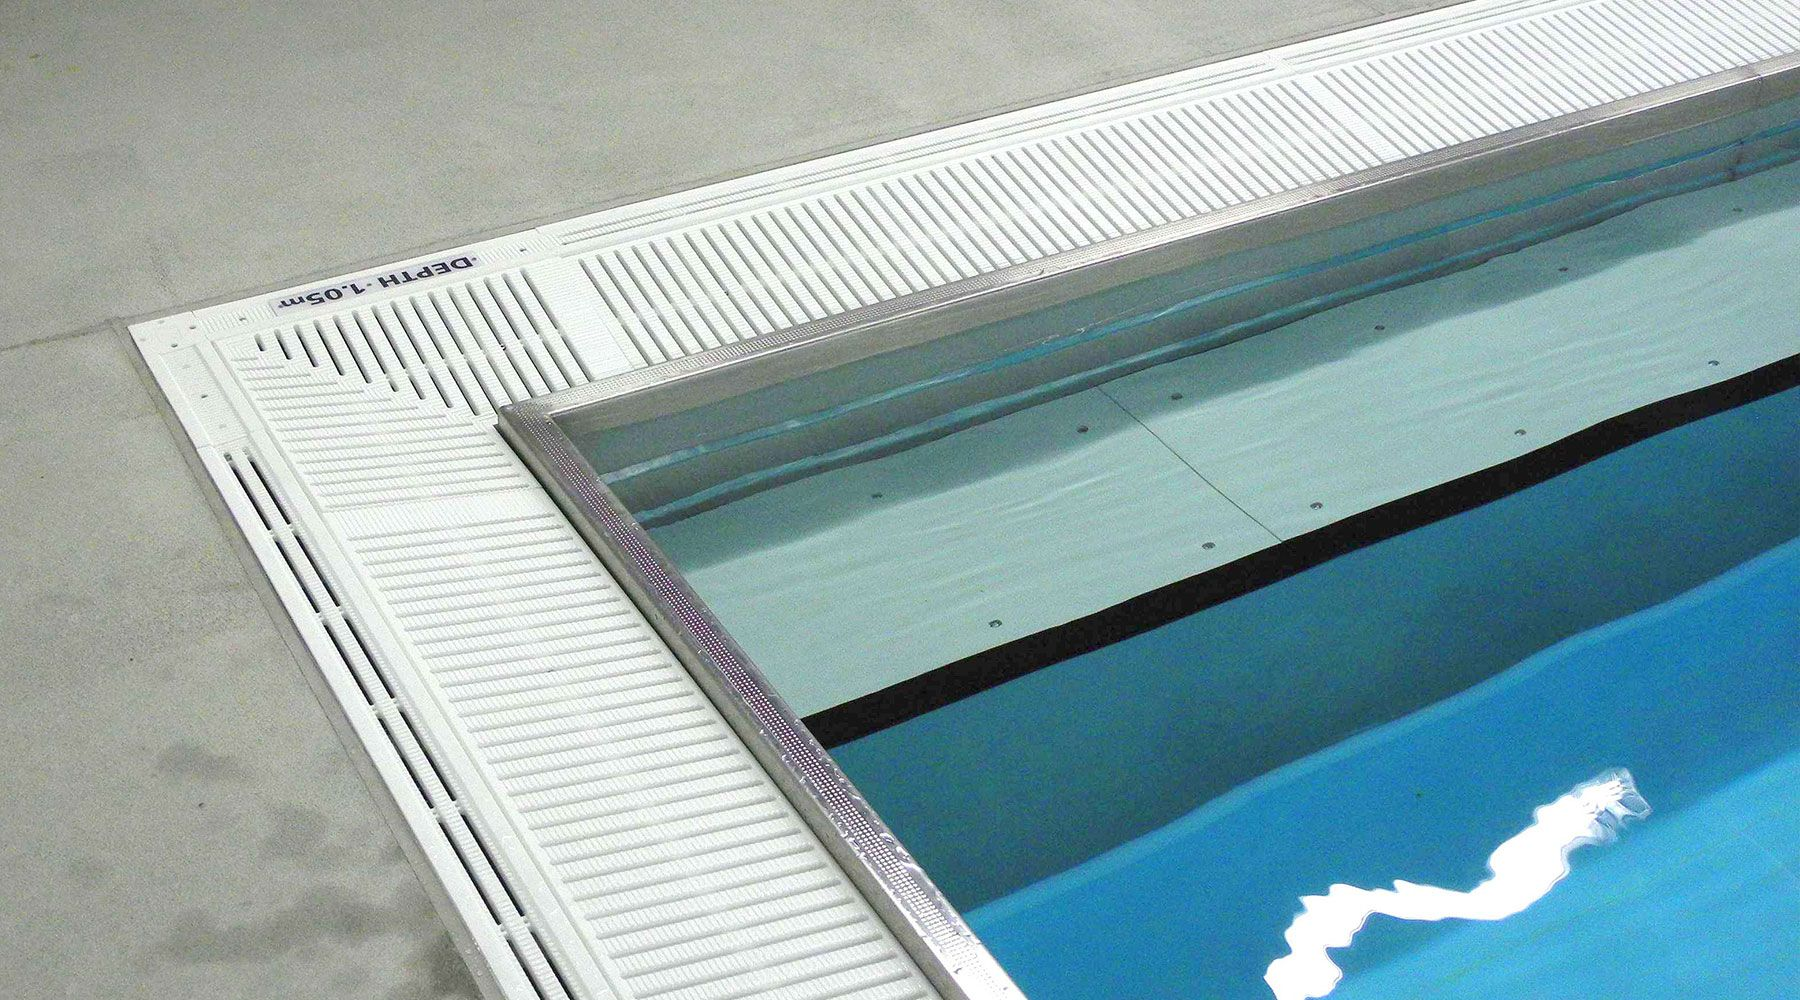 Stainless Steel Pool Gutters Natare Corporation Lap Pool Designs Pool Designs Pool